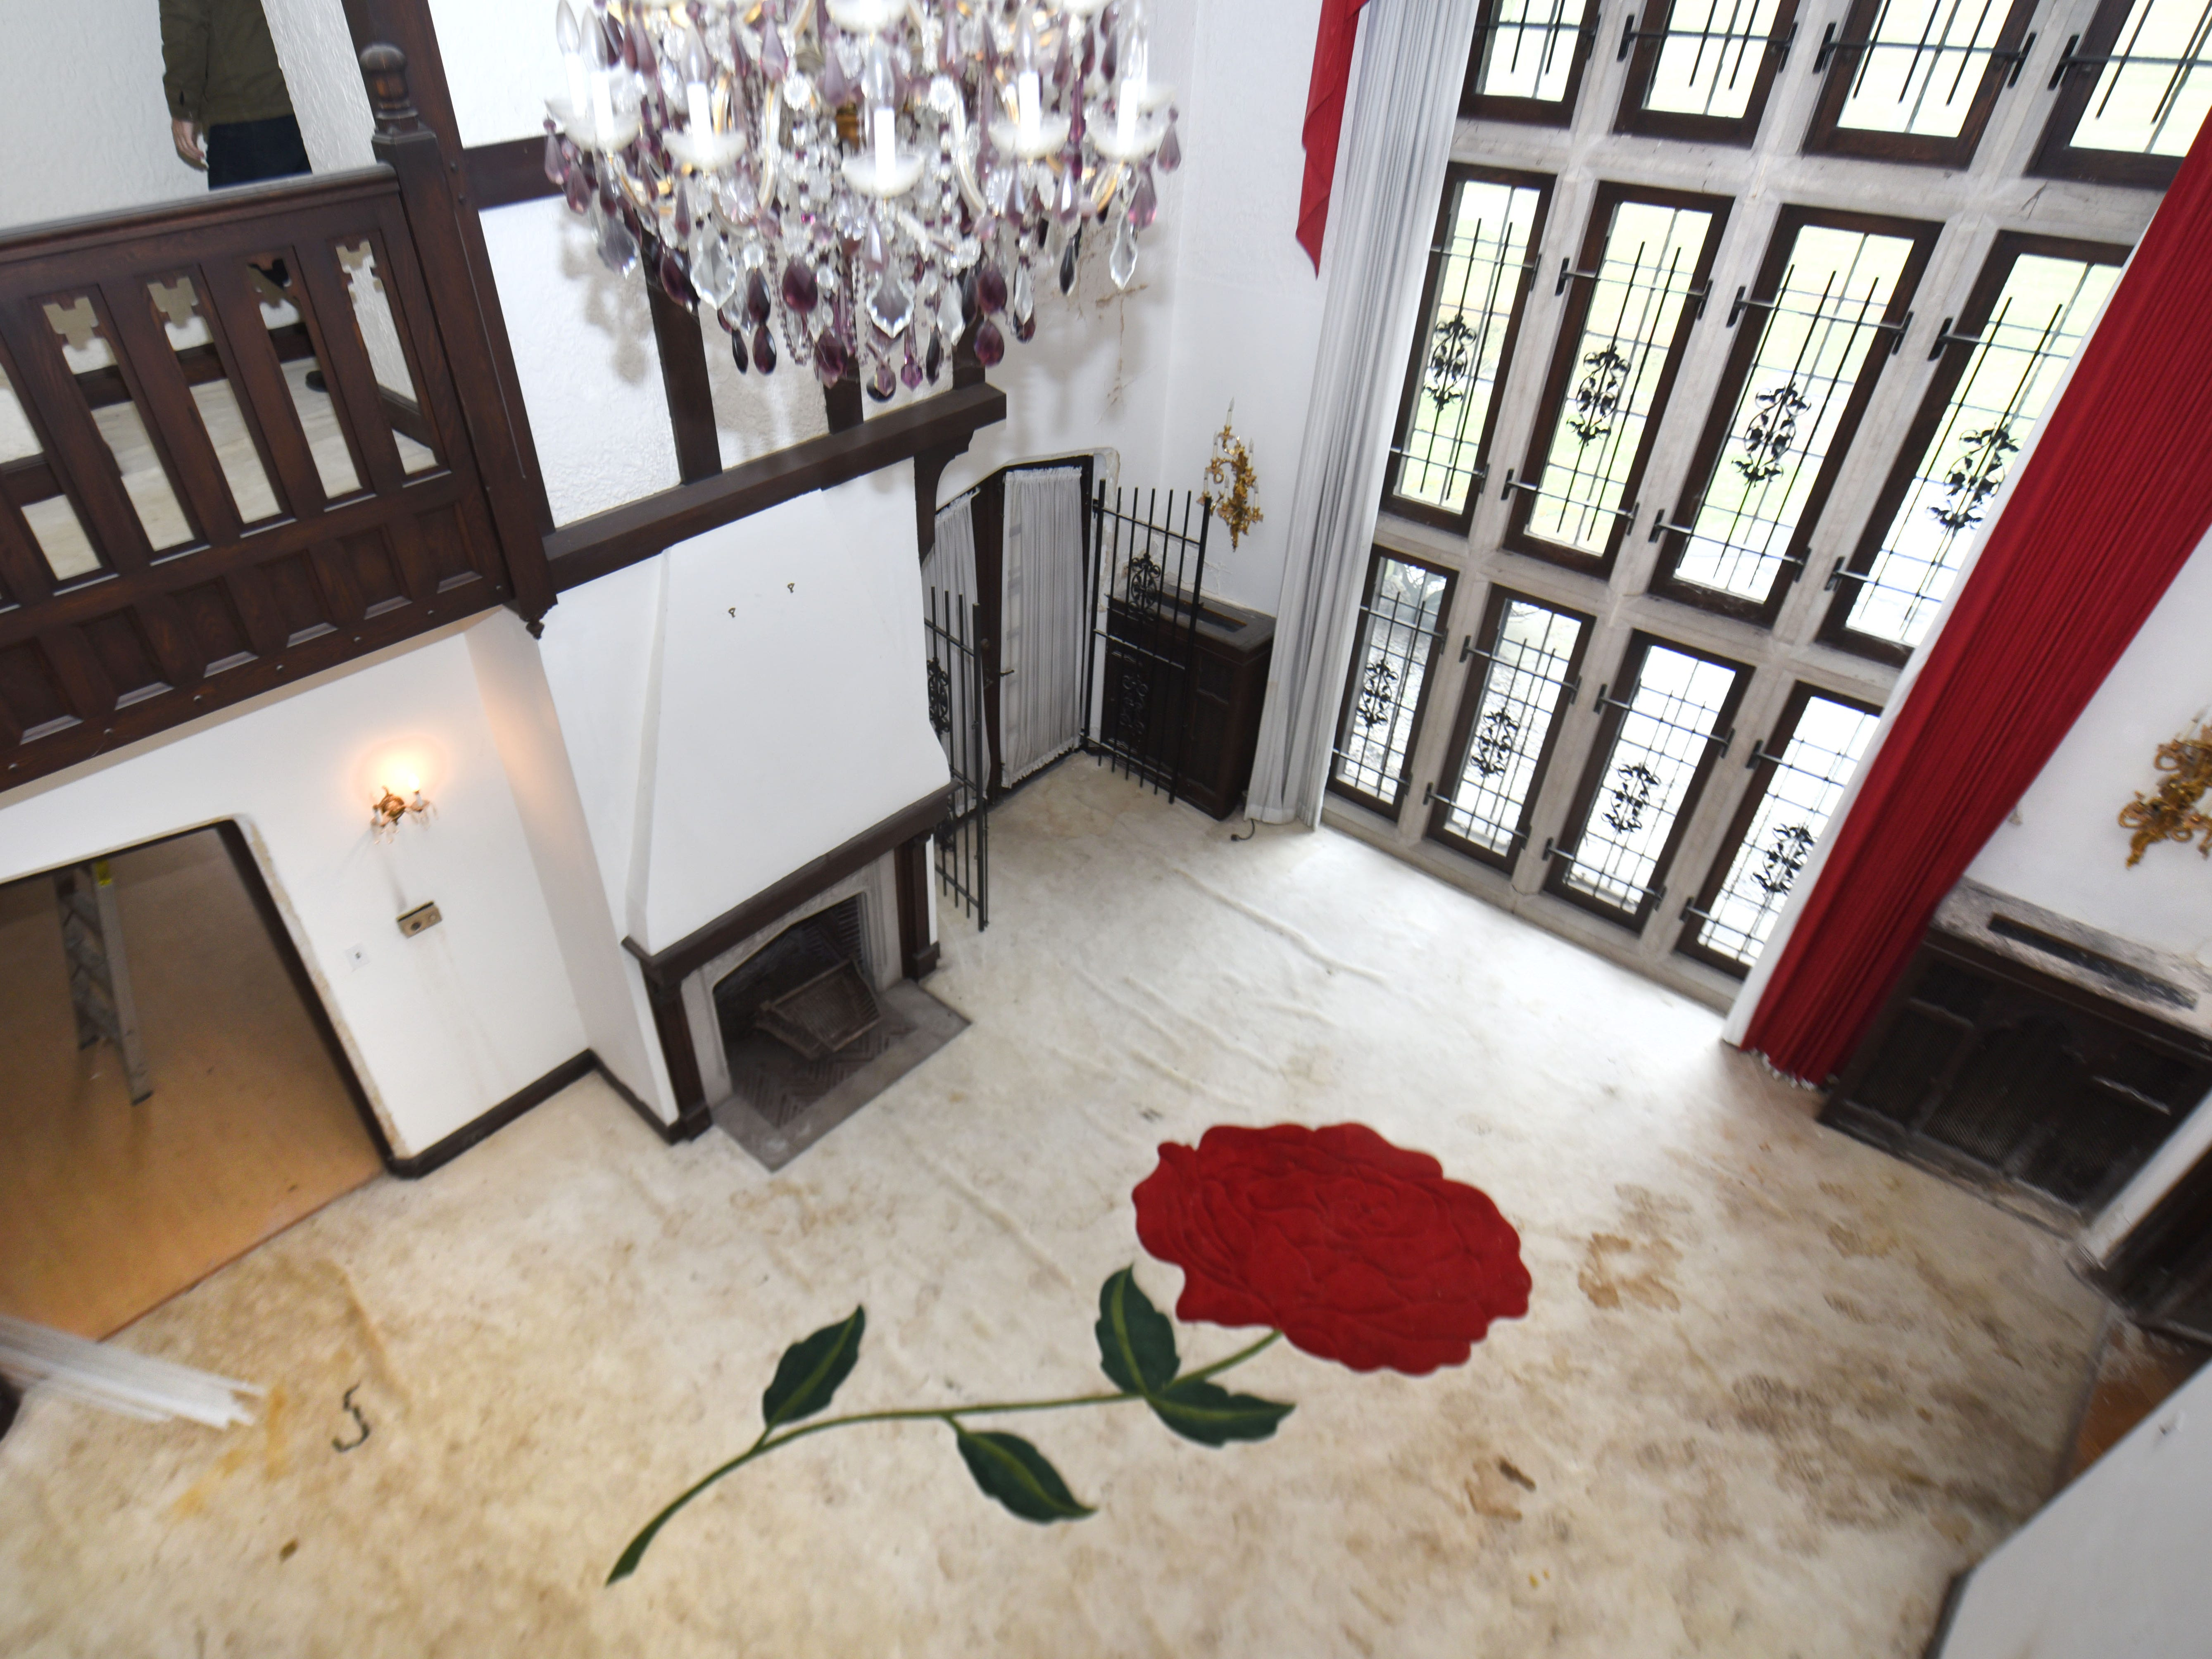 A giant rose is seen in the carpet in the grand living space of the former Detroit home of Aretha Franklin.  Long unoccupied, the 1927 home was opened for a media tour on Thursday.